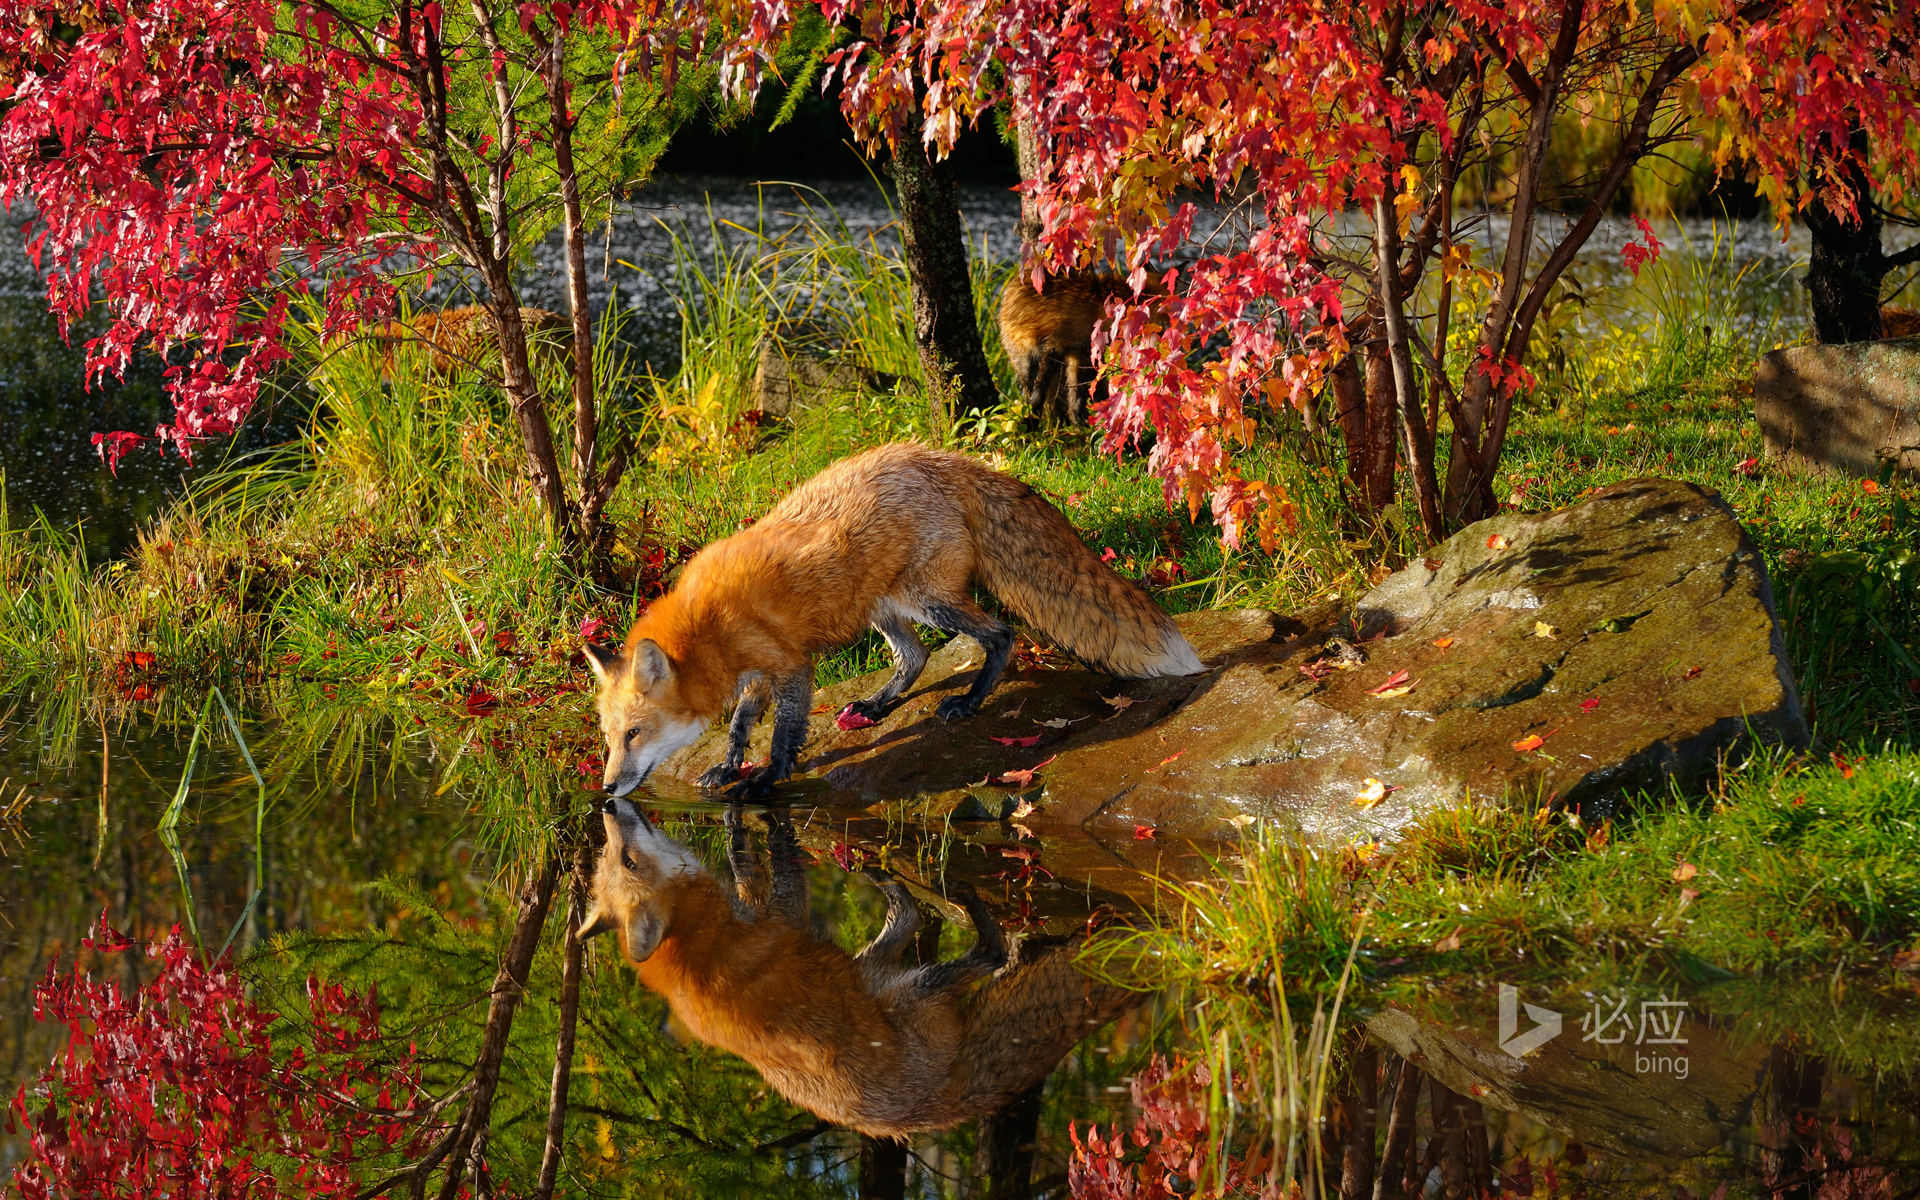 Red fox drinking water and reflection by river near maple tree in autumn morning